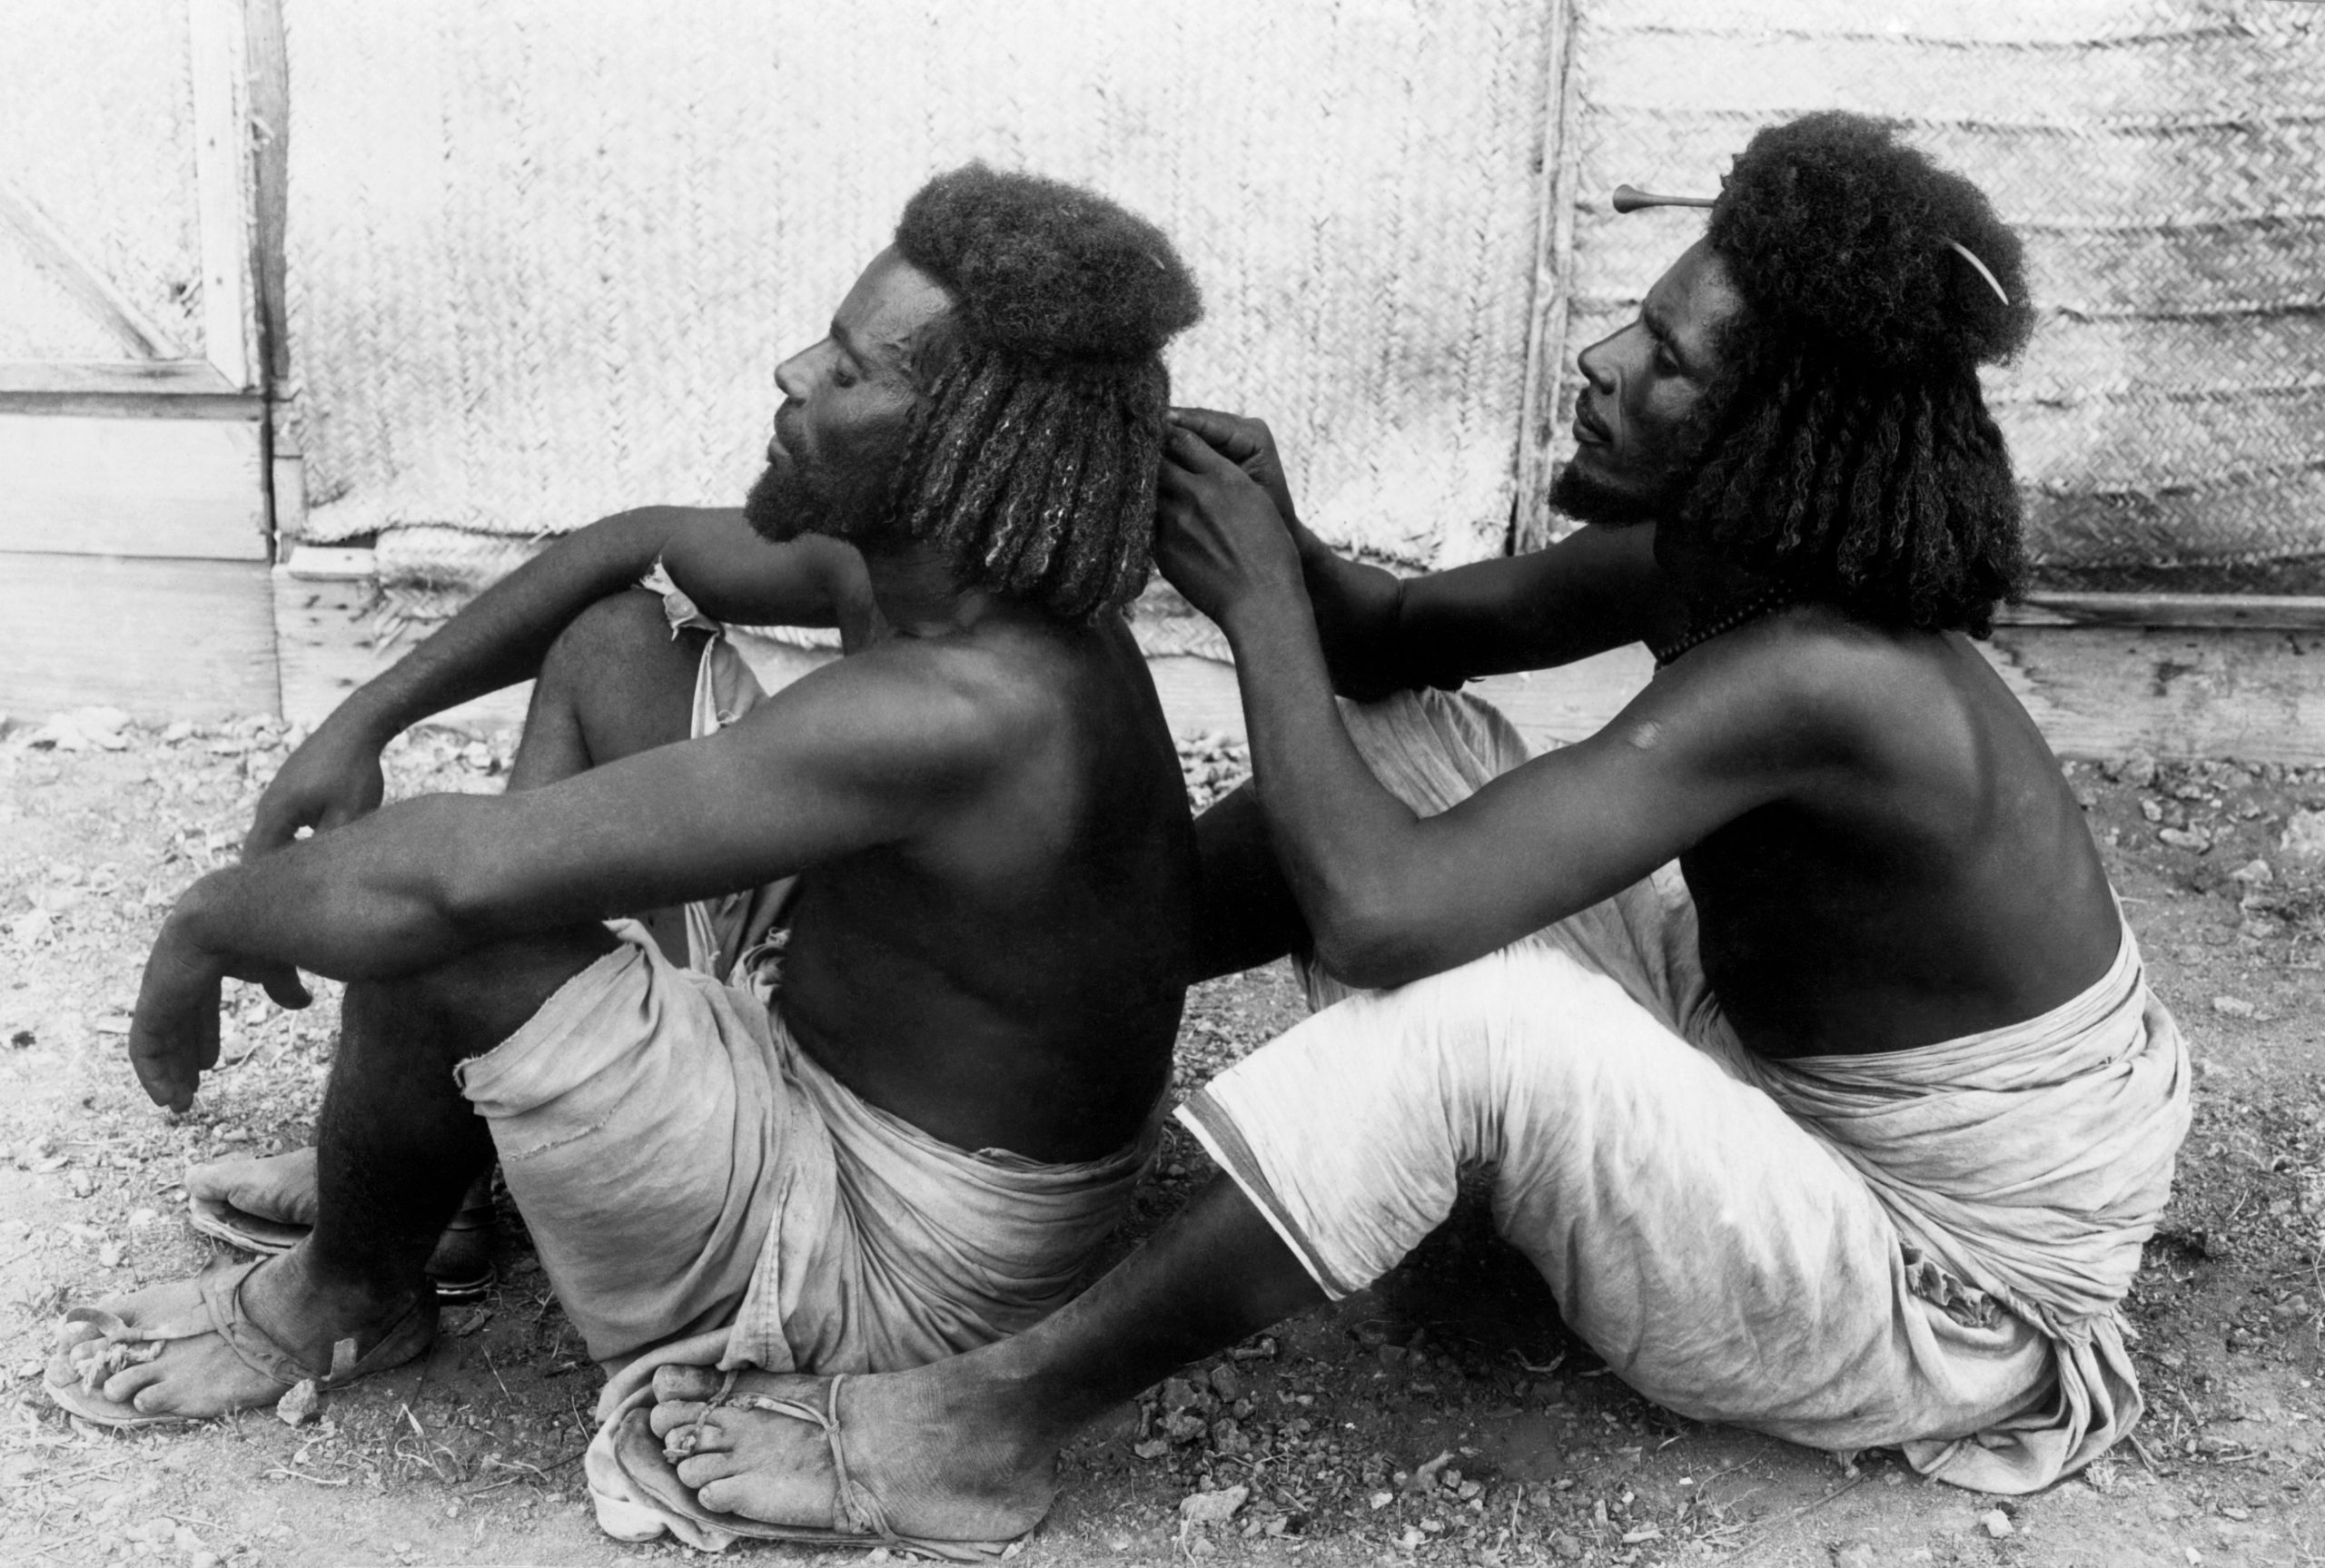 Africa, Eritrea, two young Habab care meticulously combing, 1910-20